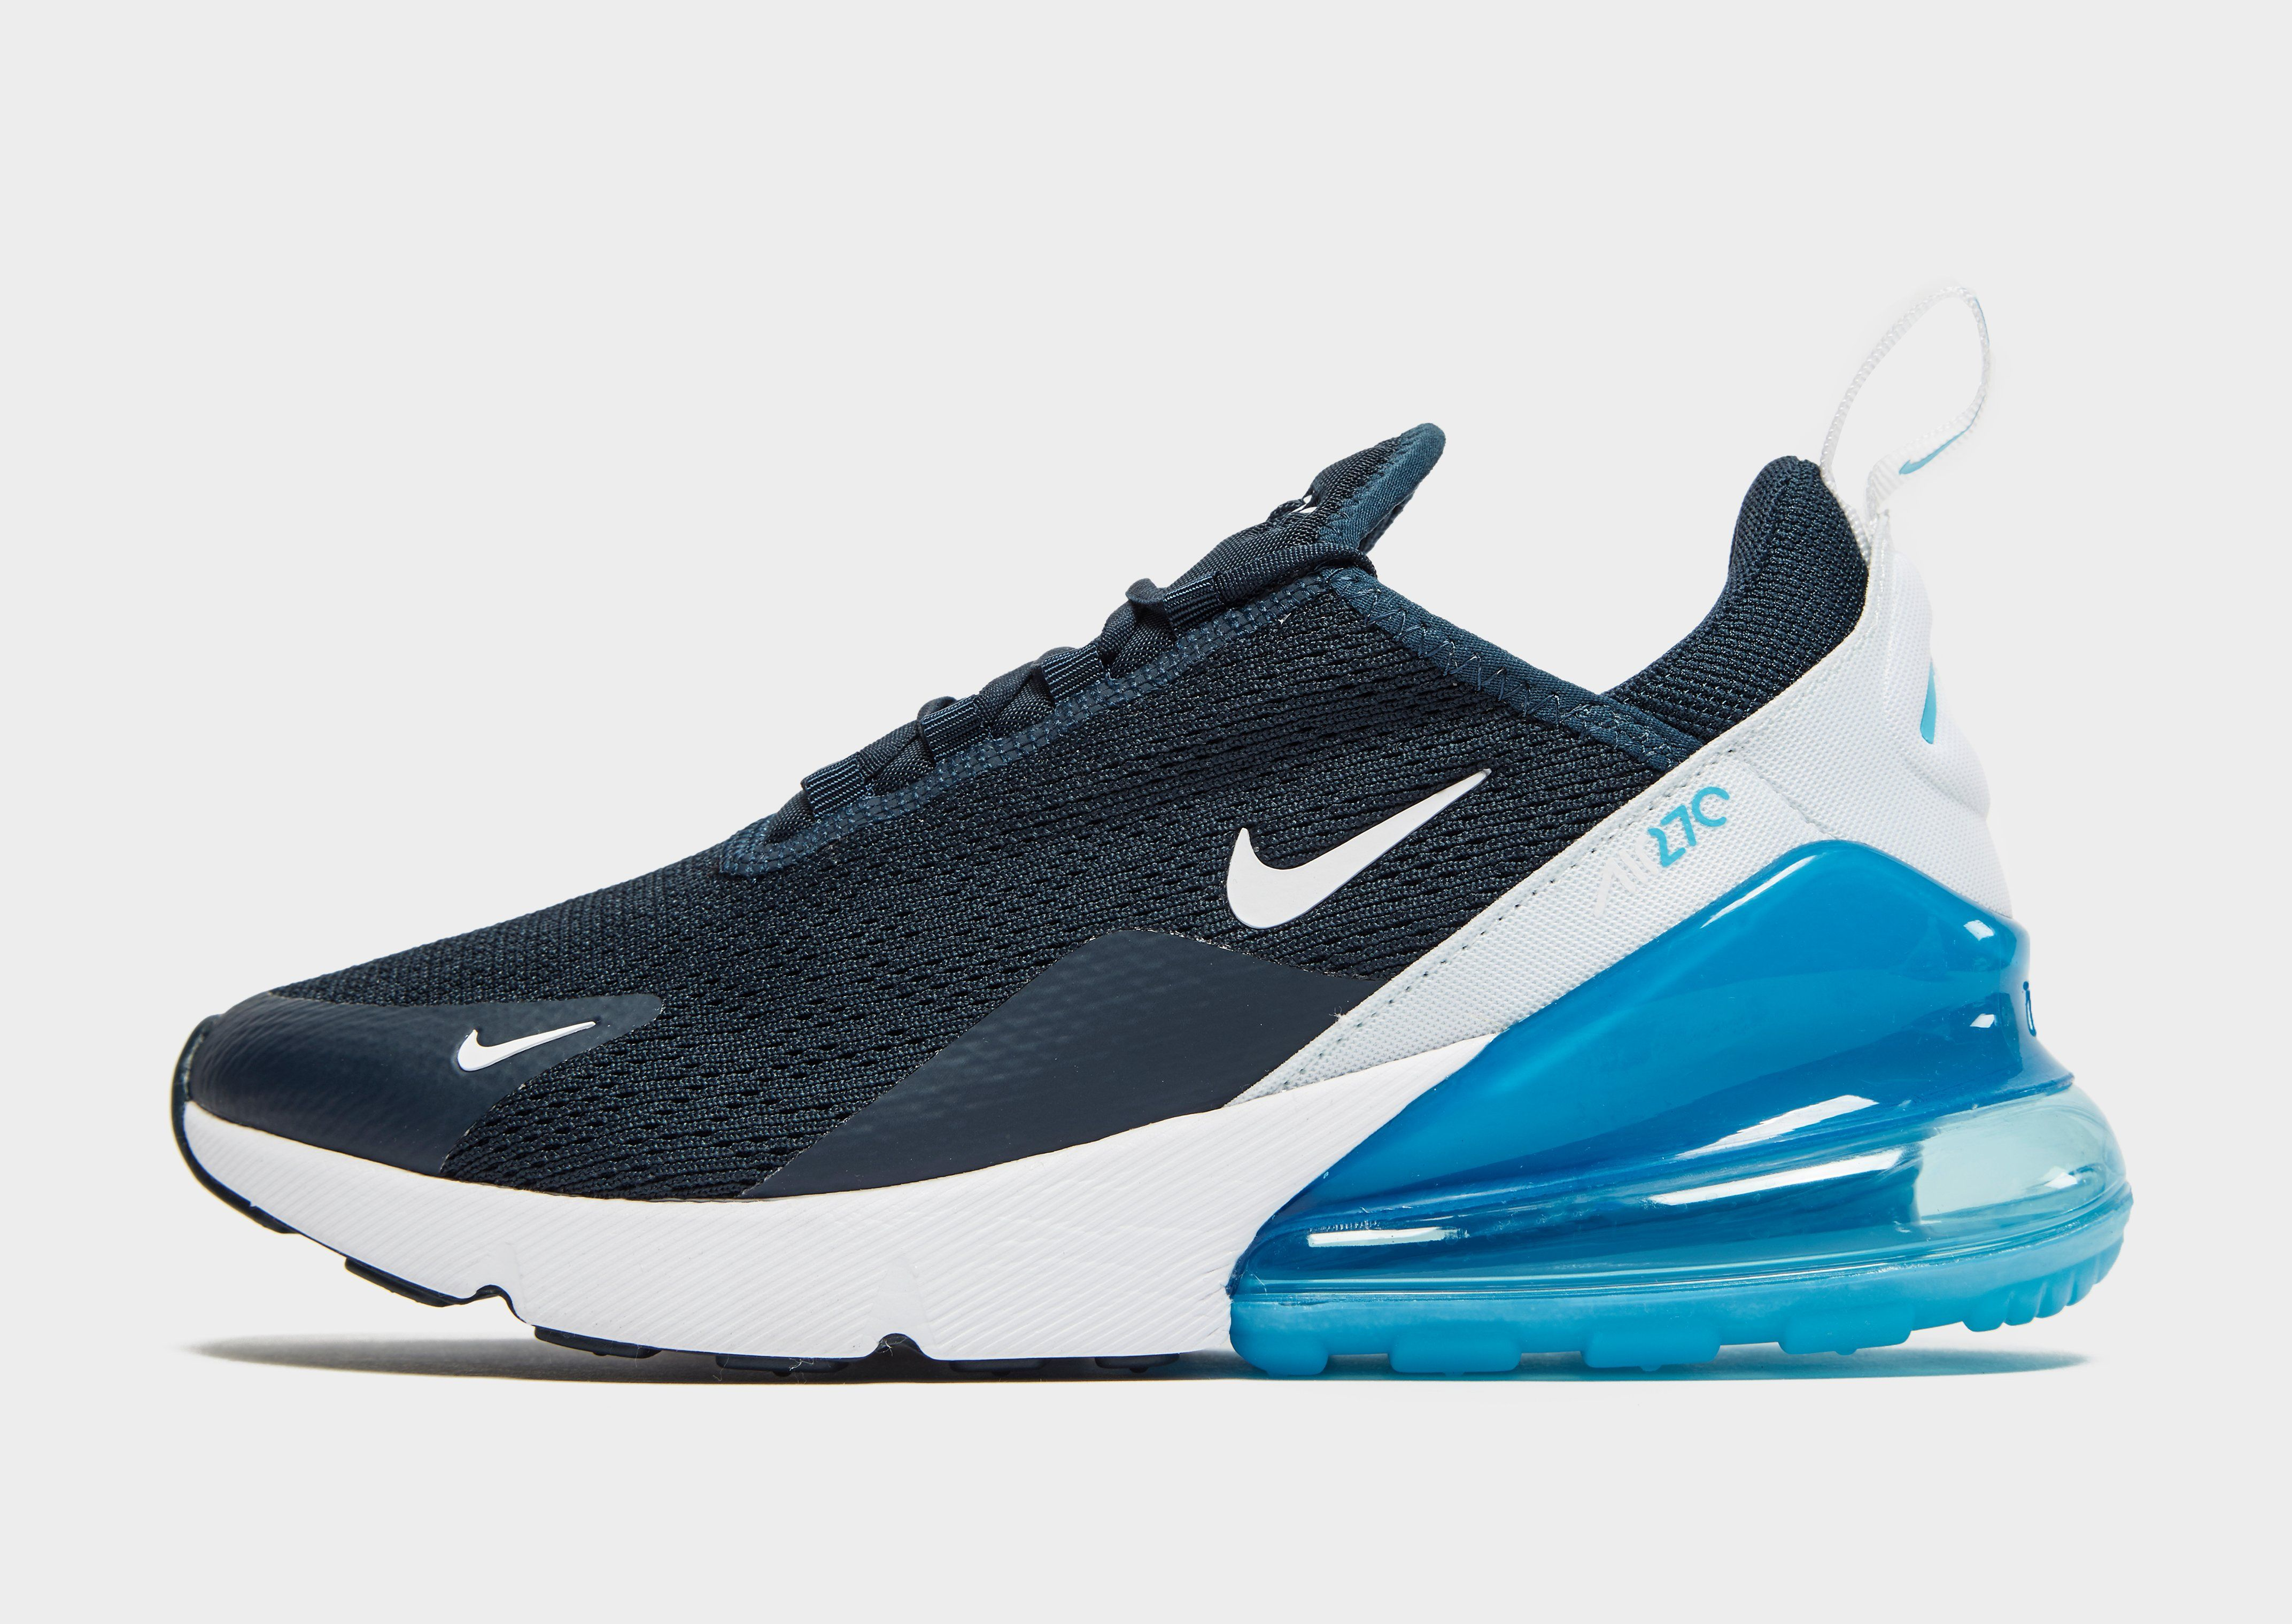 6ee693bdfb Nike Air Max 270 Women's | JD Sports